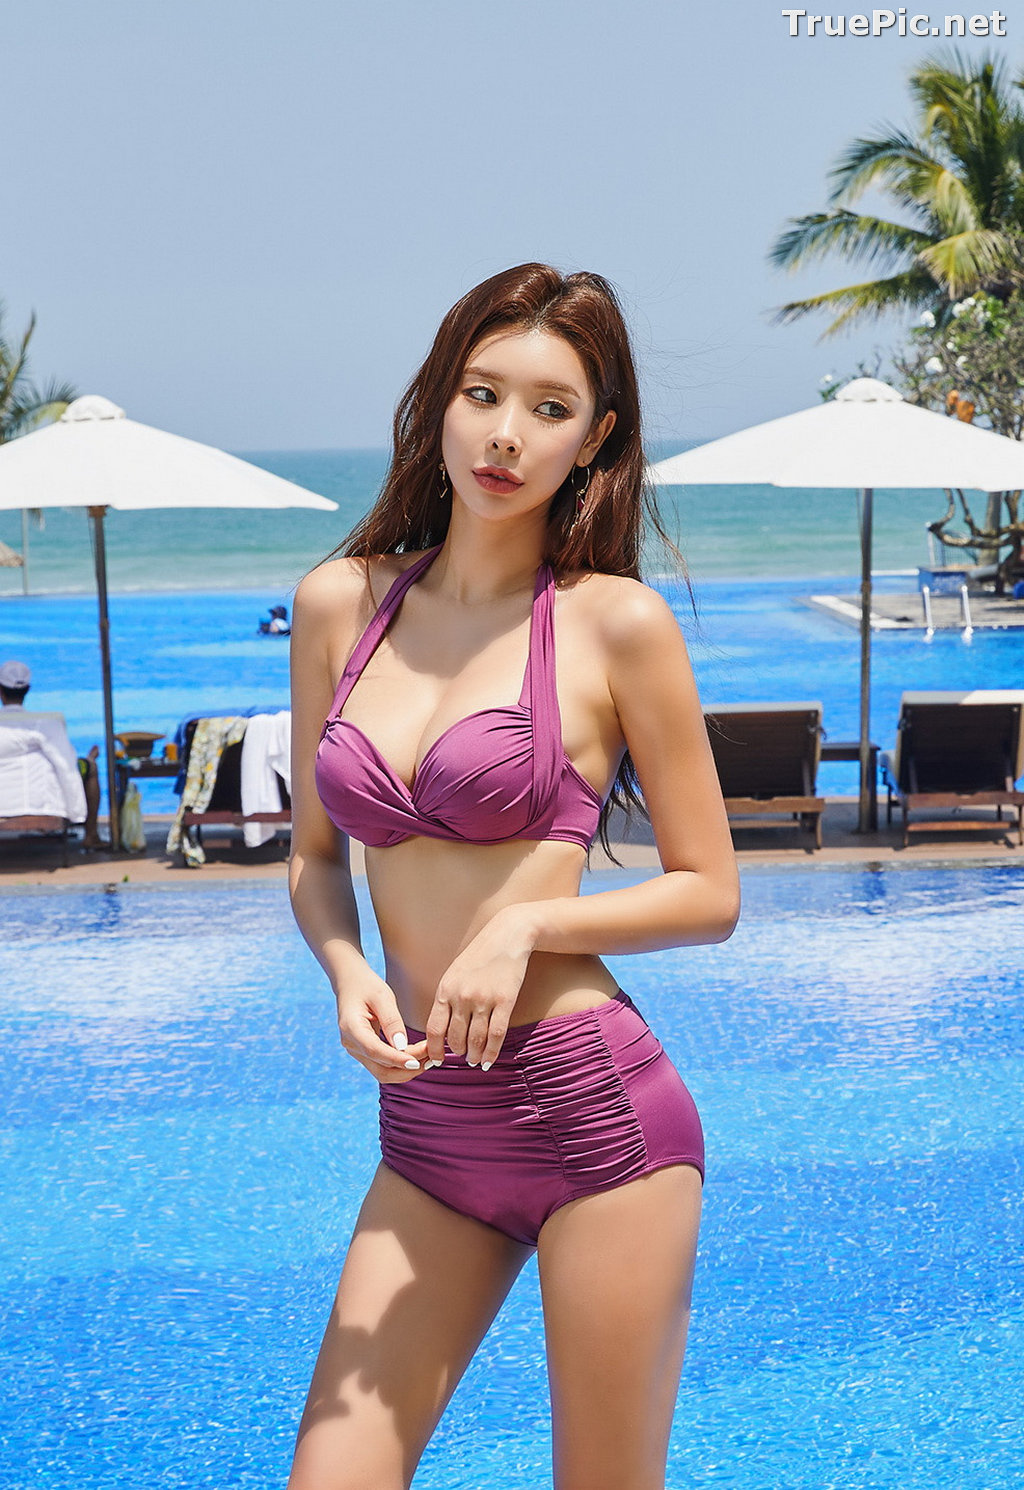 Image Park Da Hyun - Korean Fashion Model - RoseMellow Purple Bikini - TruePic.net - Picture-7